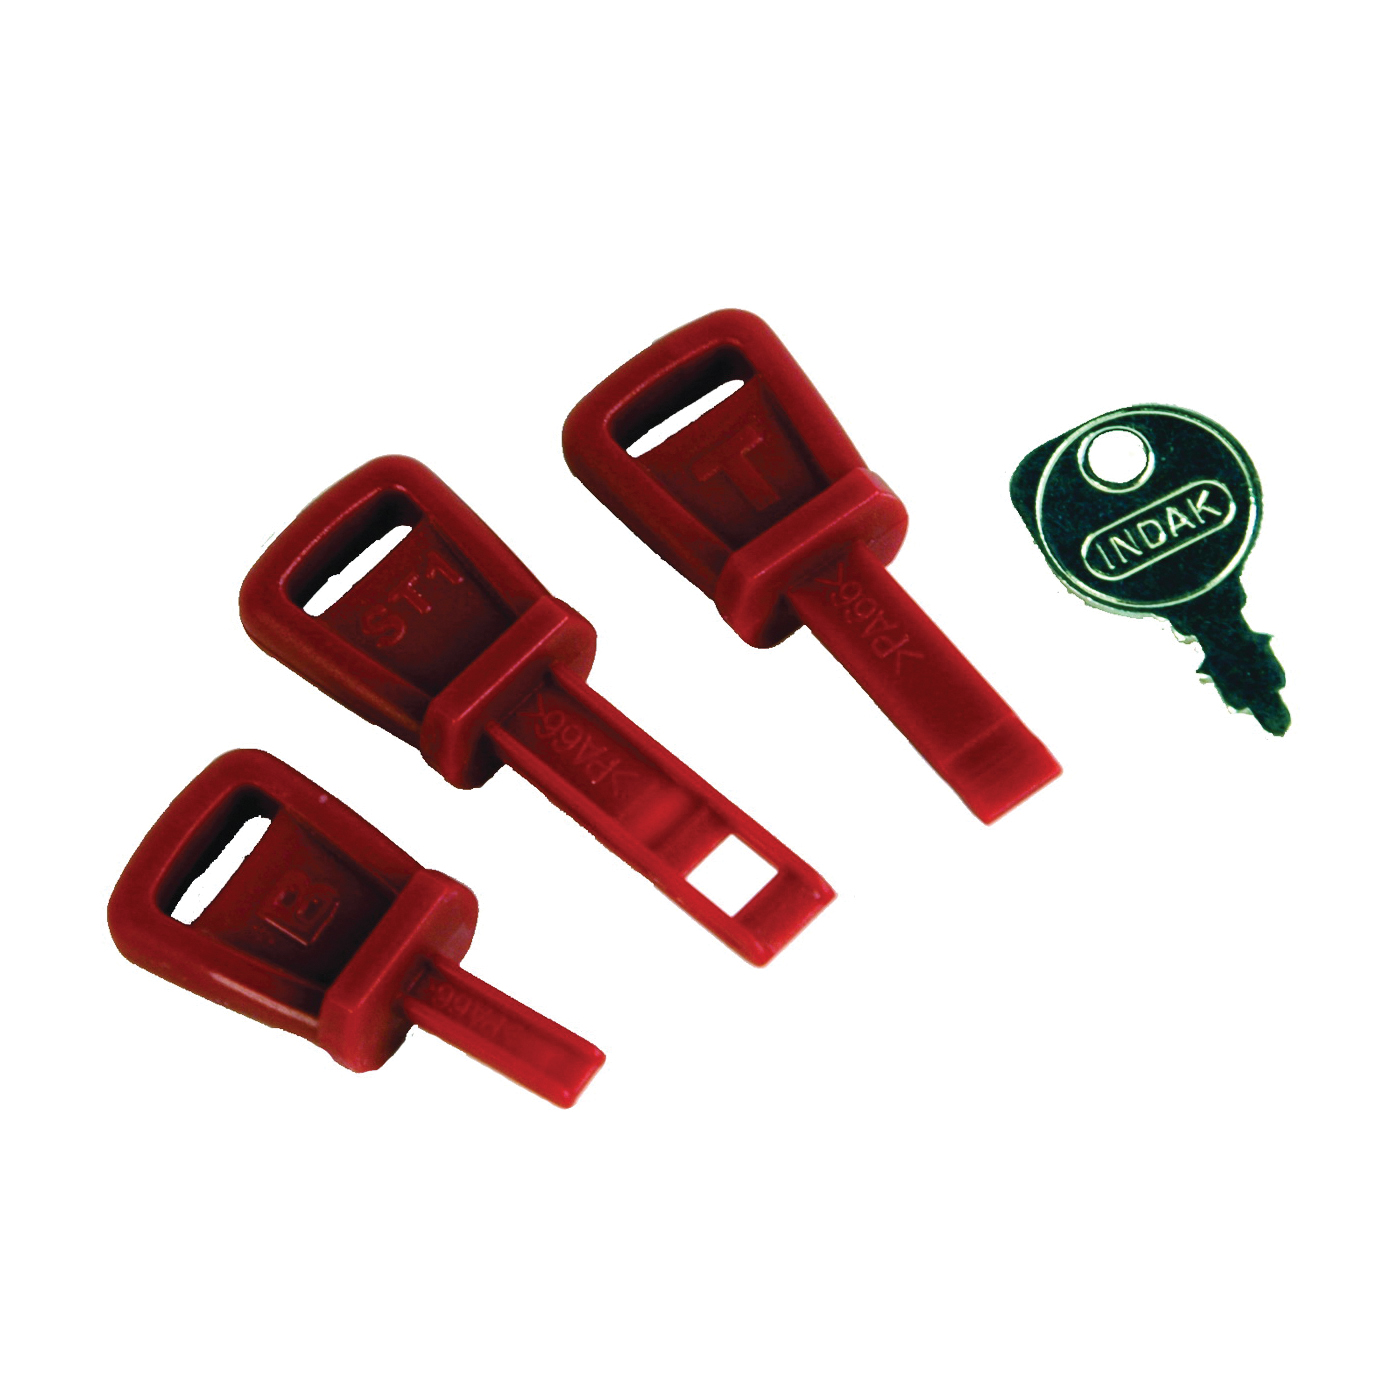 Picture of ARNOLD 490-241-0008 Snow Thrower Key Set, Universal